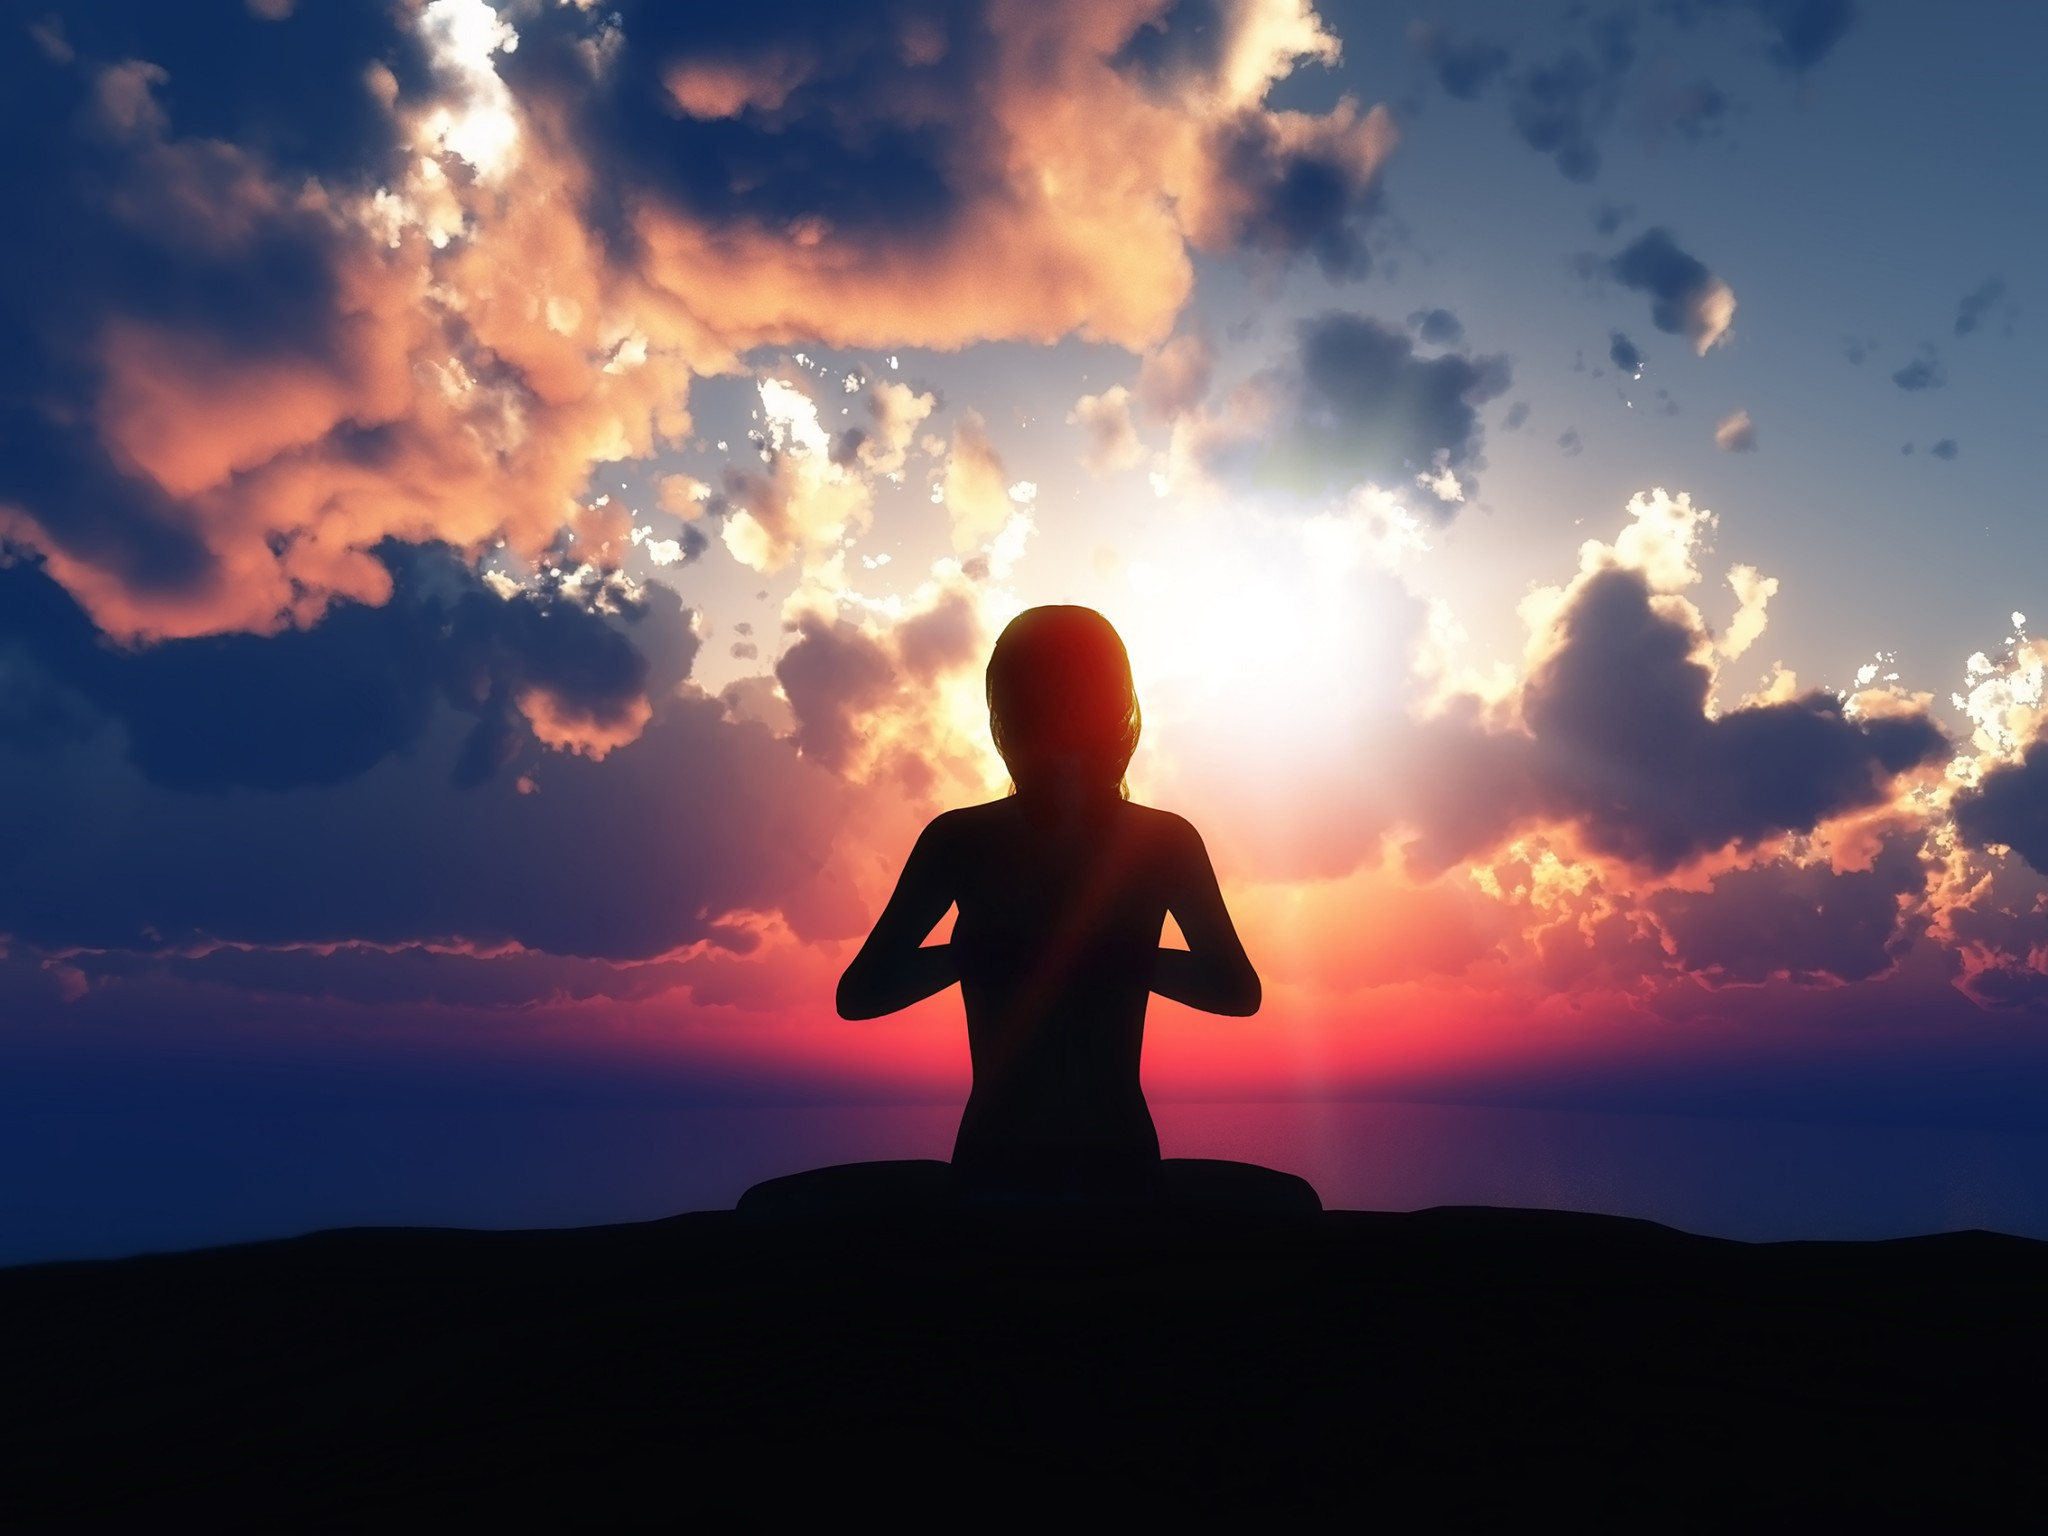 Mindfulness & Meditation for Health and Wellbeing